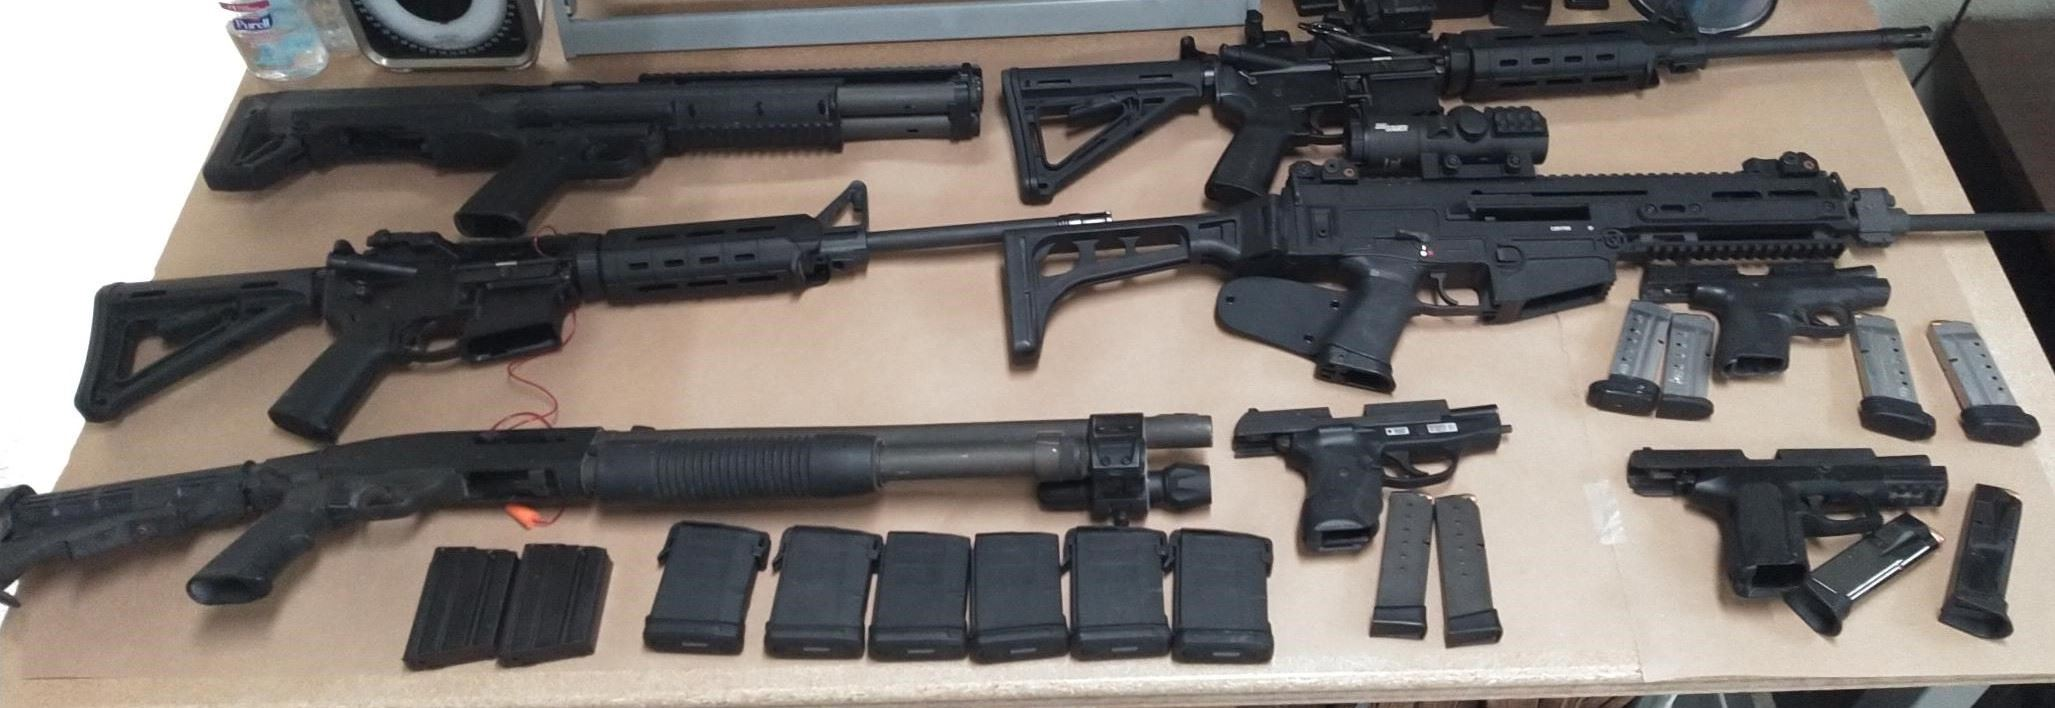 Eight black firearms located during search warrant